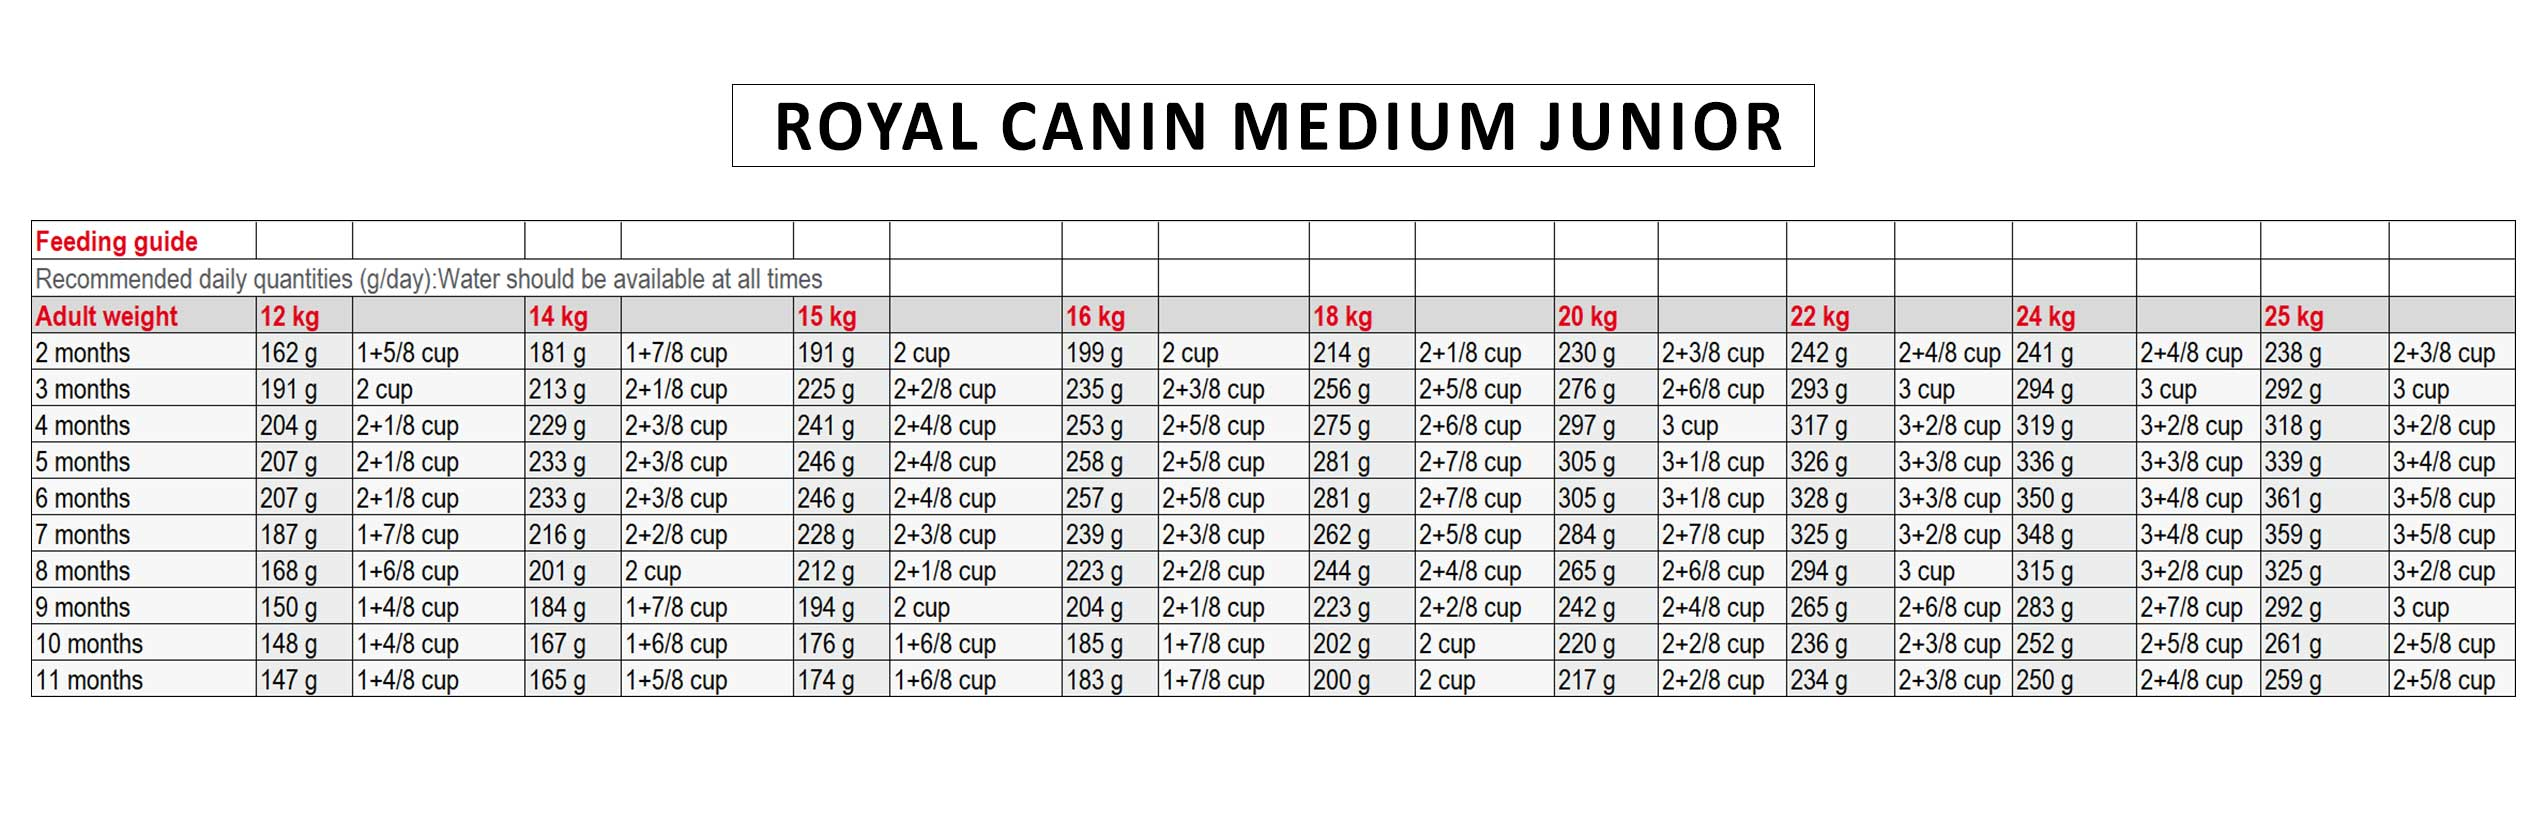 Royal-canin-Medium-Junior